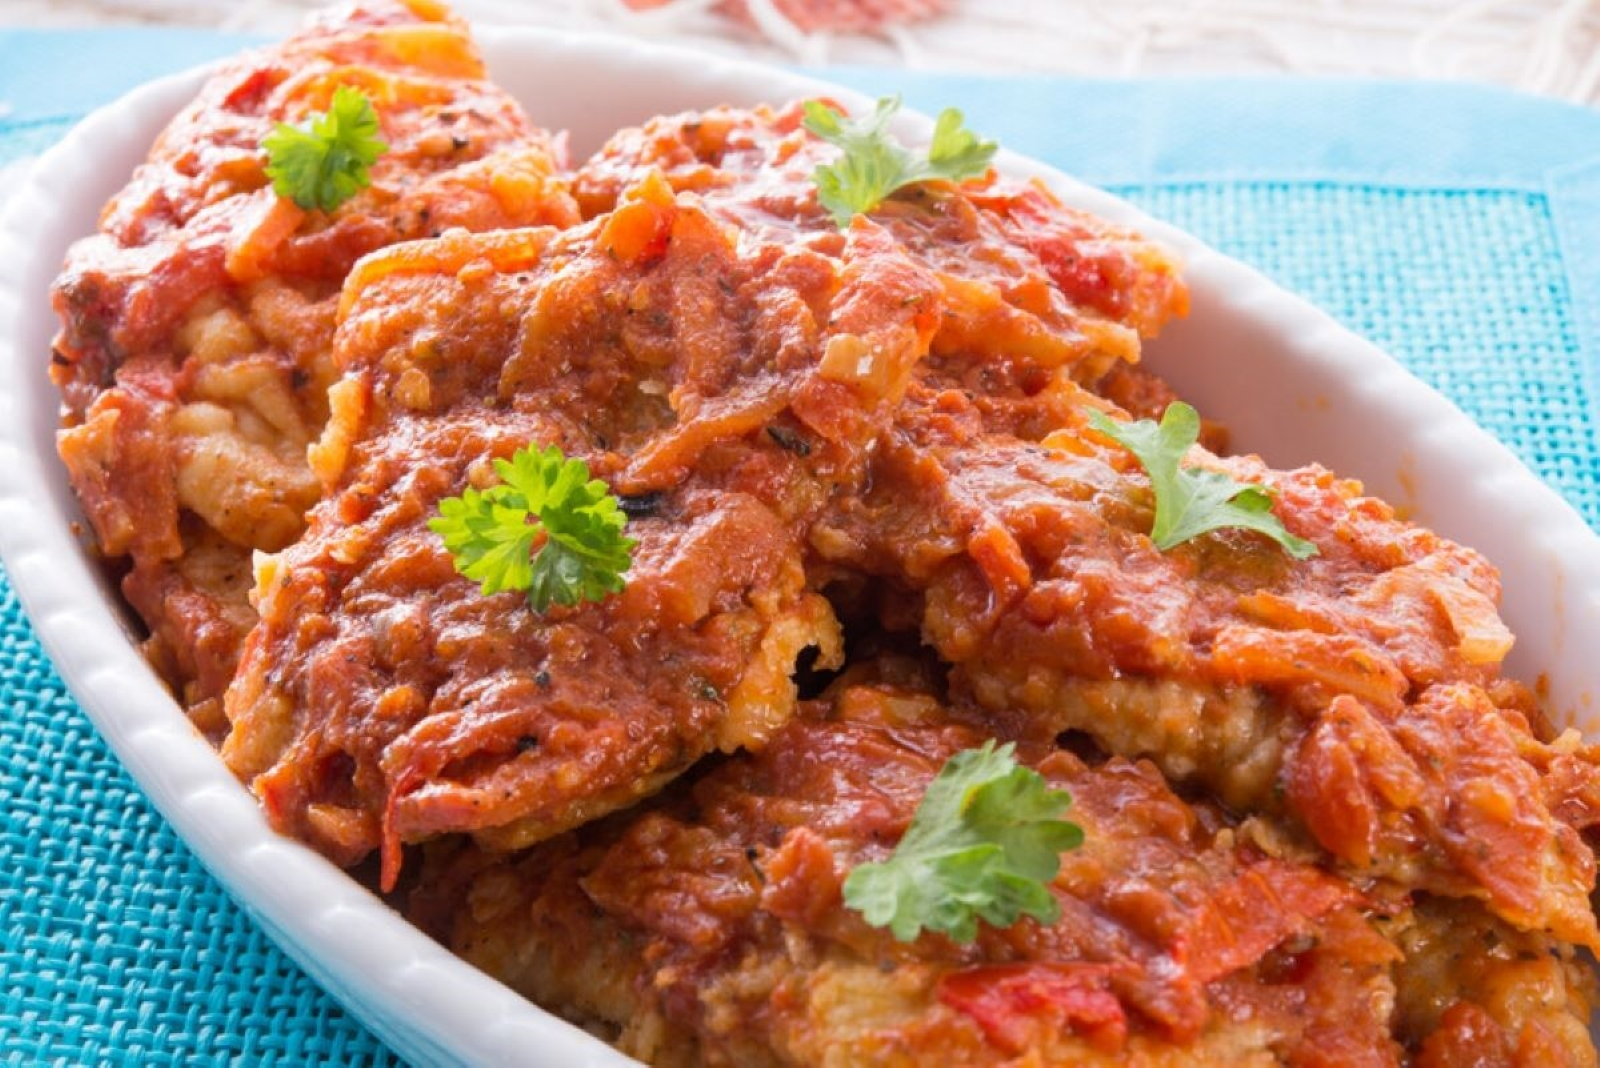 Fried fish with tomato sauce in a white oval bowl on a vibrant blue placemat